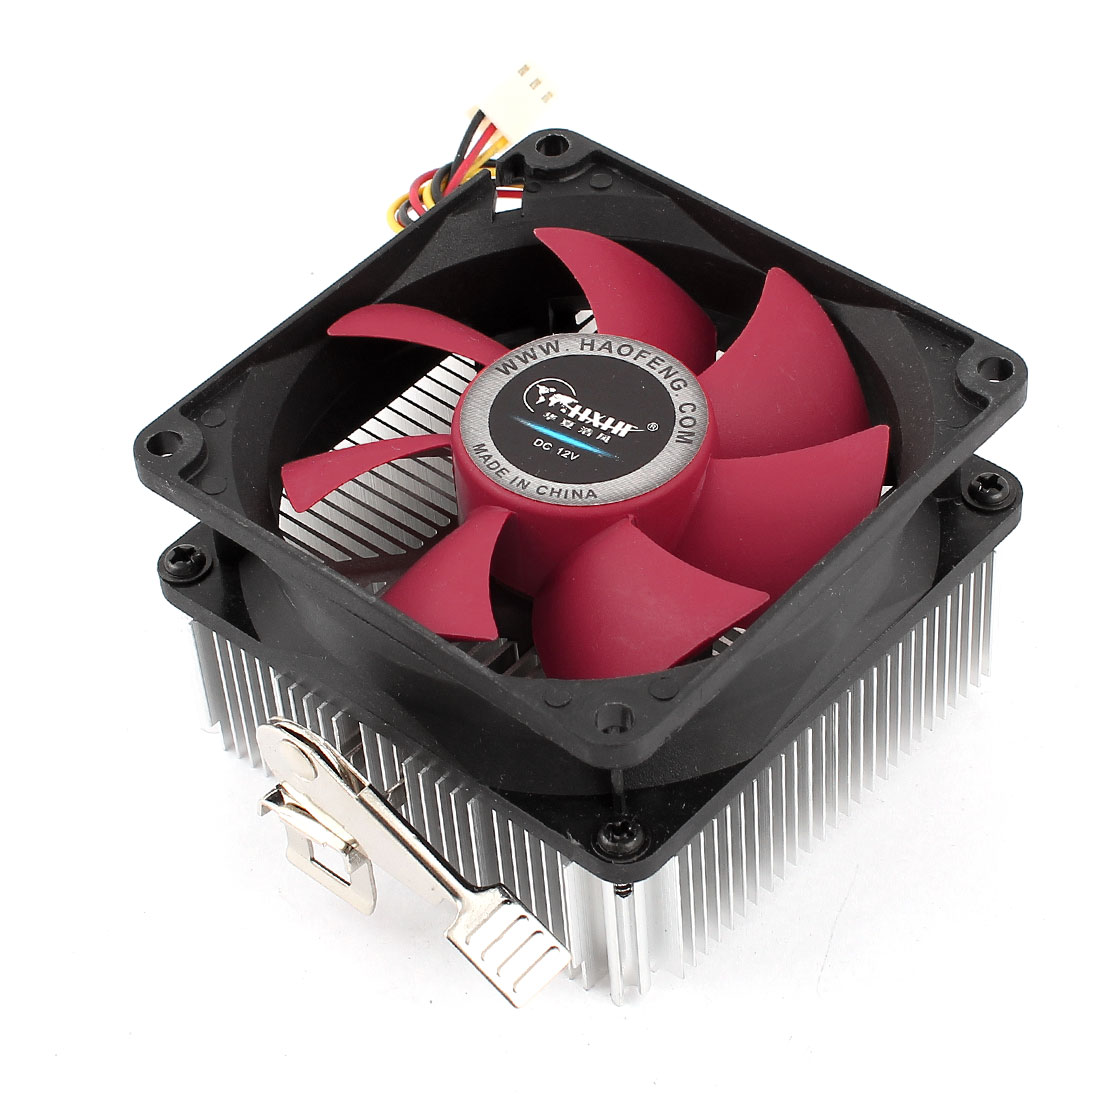 DC 12V 0.15A 3Pin Connector PC CPU Cooler Cooling Fan Heatsink for AMD Phenom X4